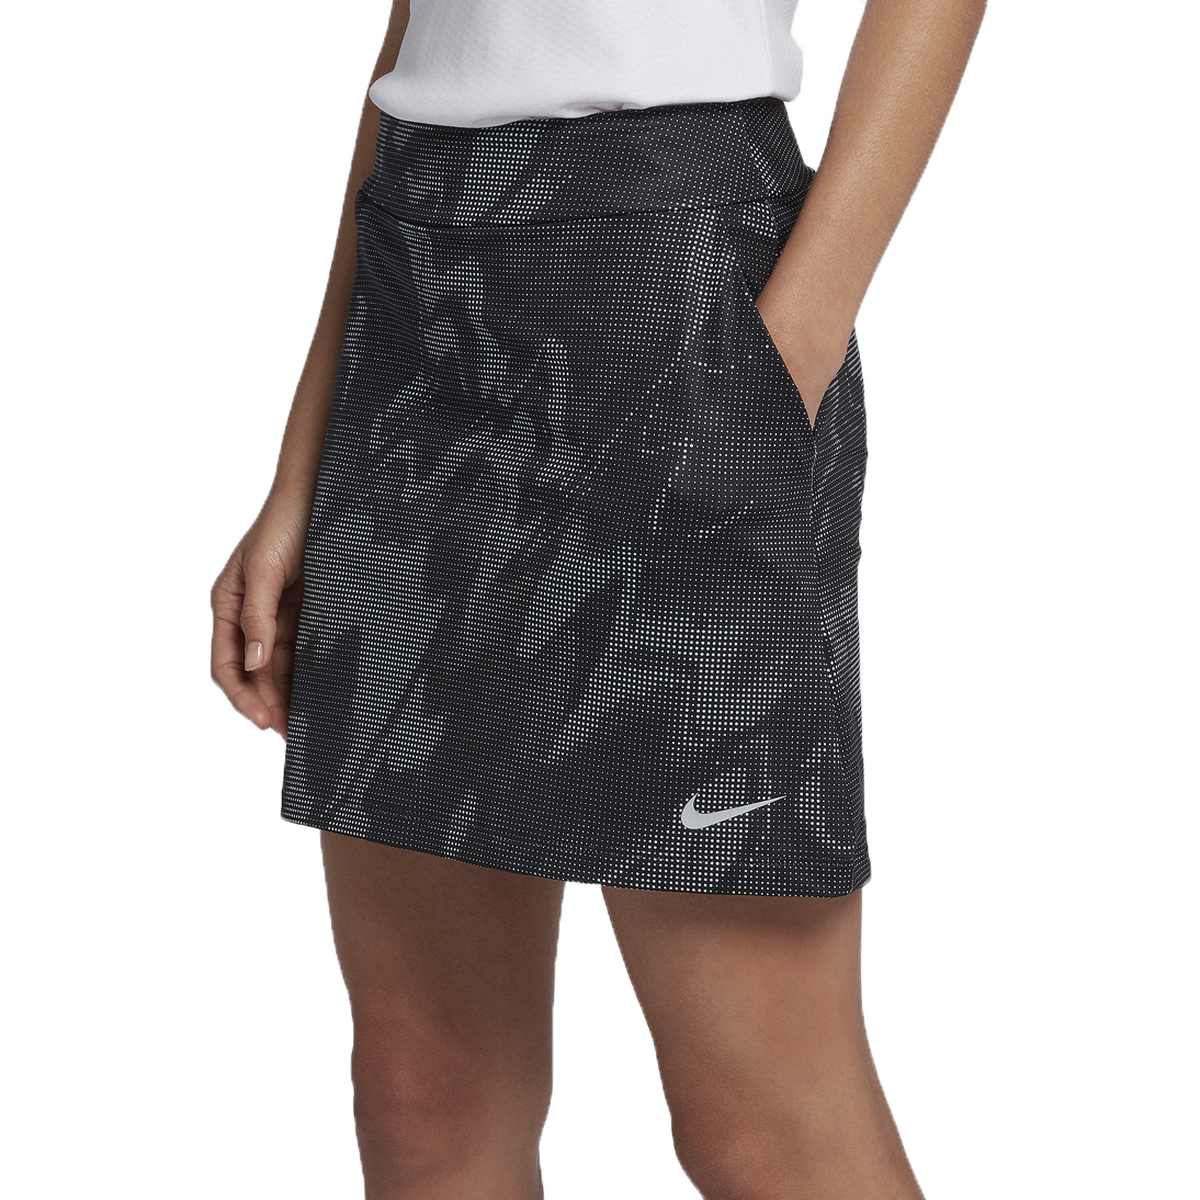 1ba51cb4bac Images. Nike Women  39 s Dry Printed Golf Skort